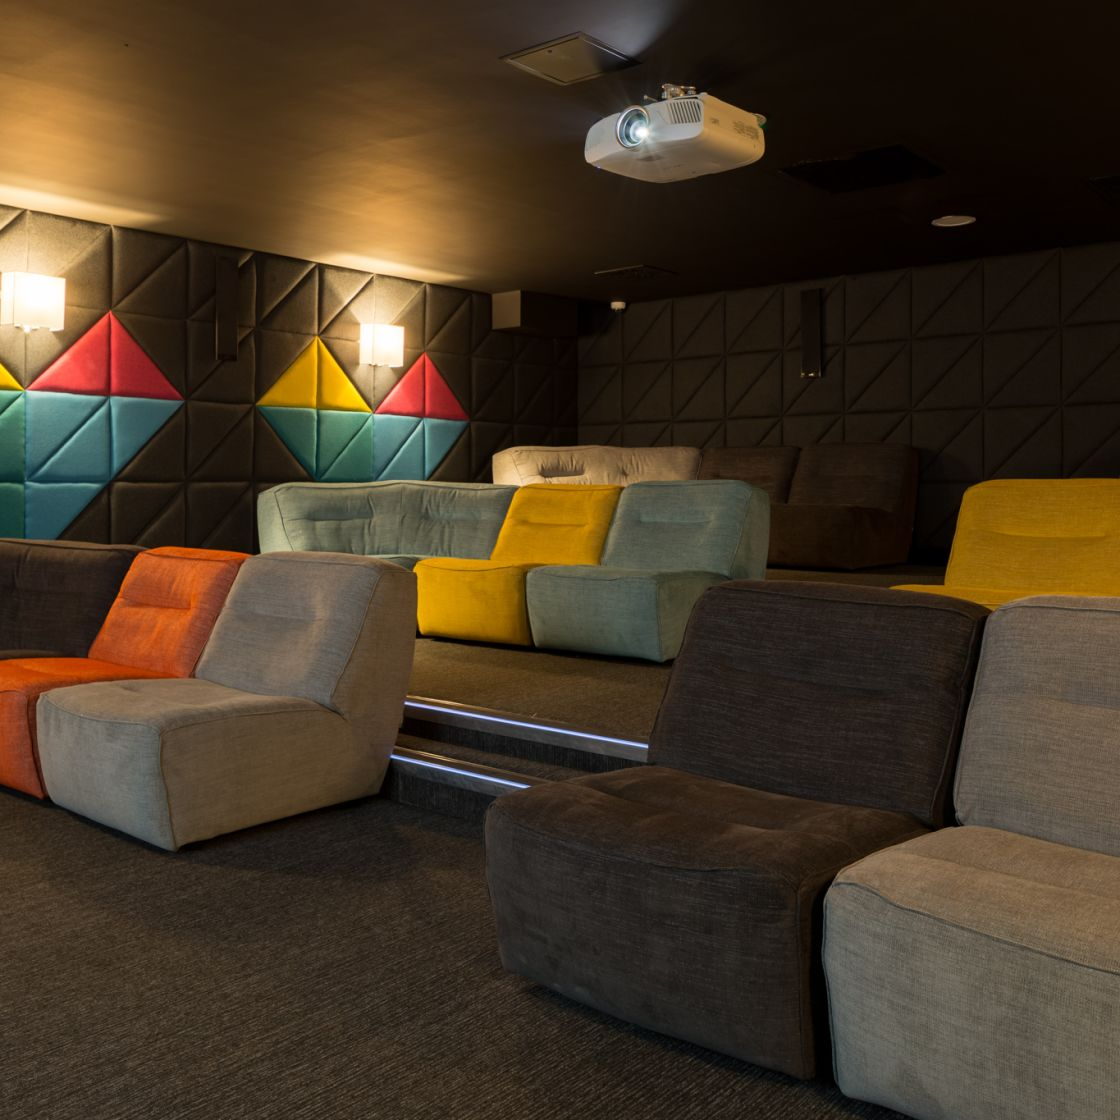 Cinema room with soft fabric seating at IconInc, The Glassworks. Student Accommodation in Leeds